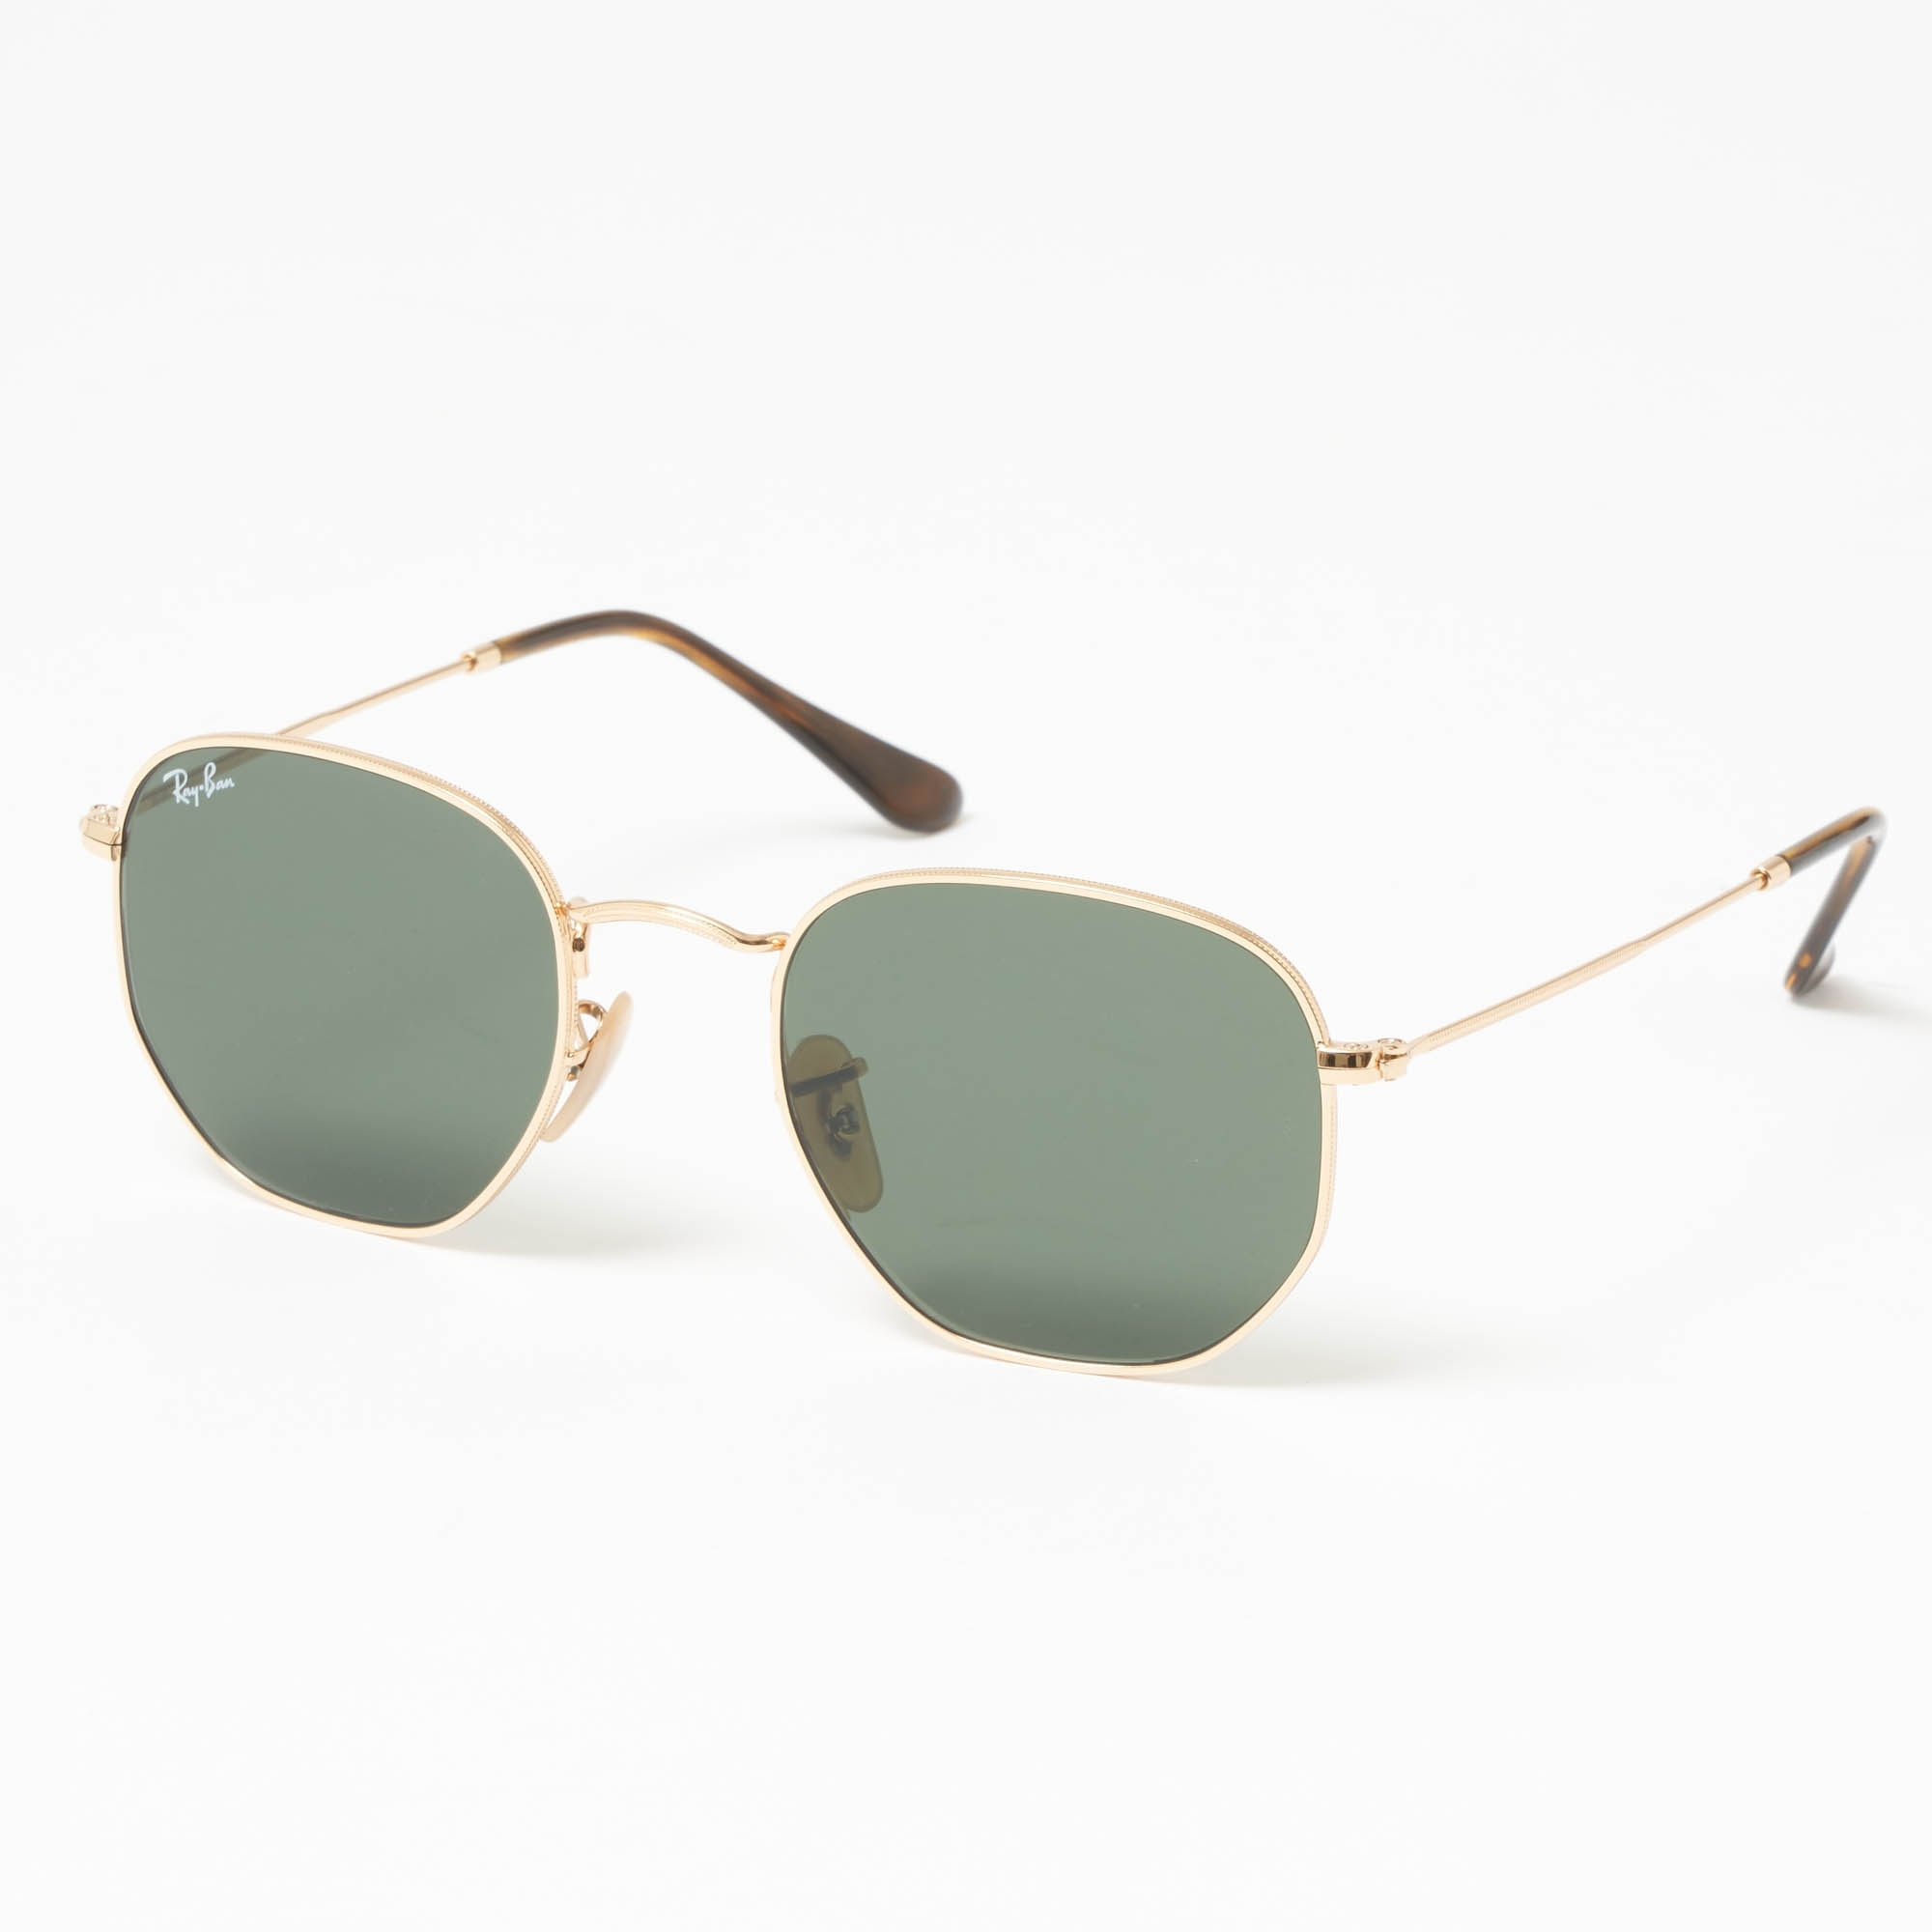 841ee0e612 Gold Hexagonal Flat Lens Sunglasses - Green Classic G-15 Lenses